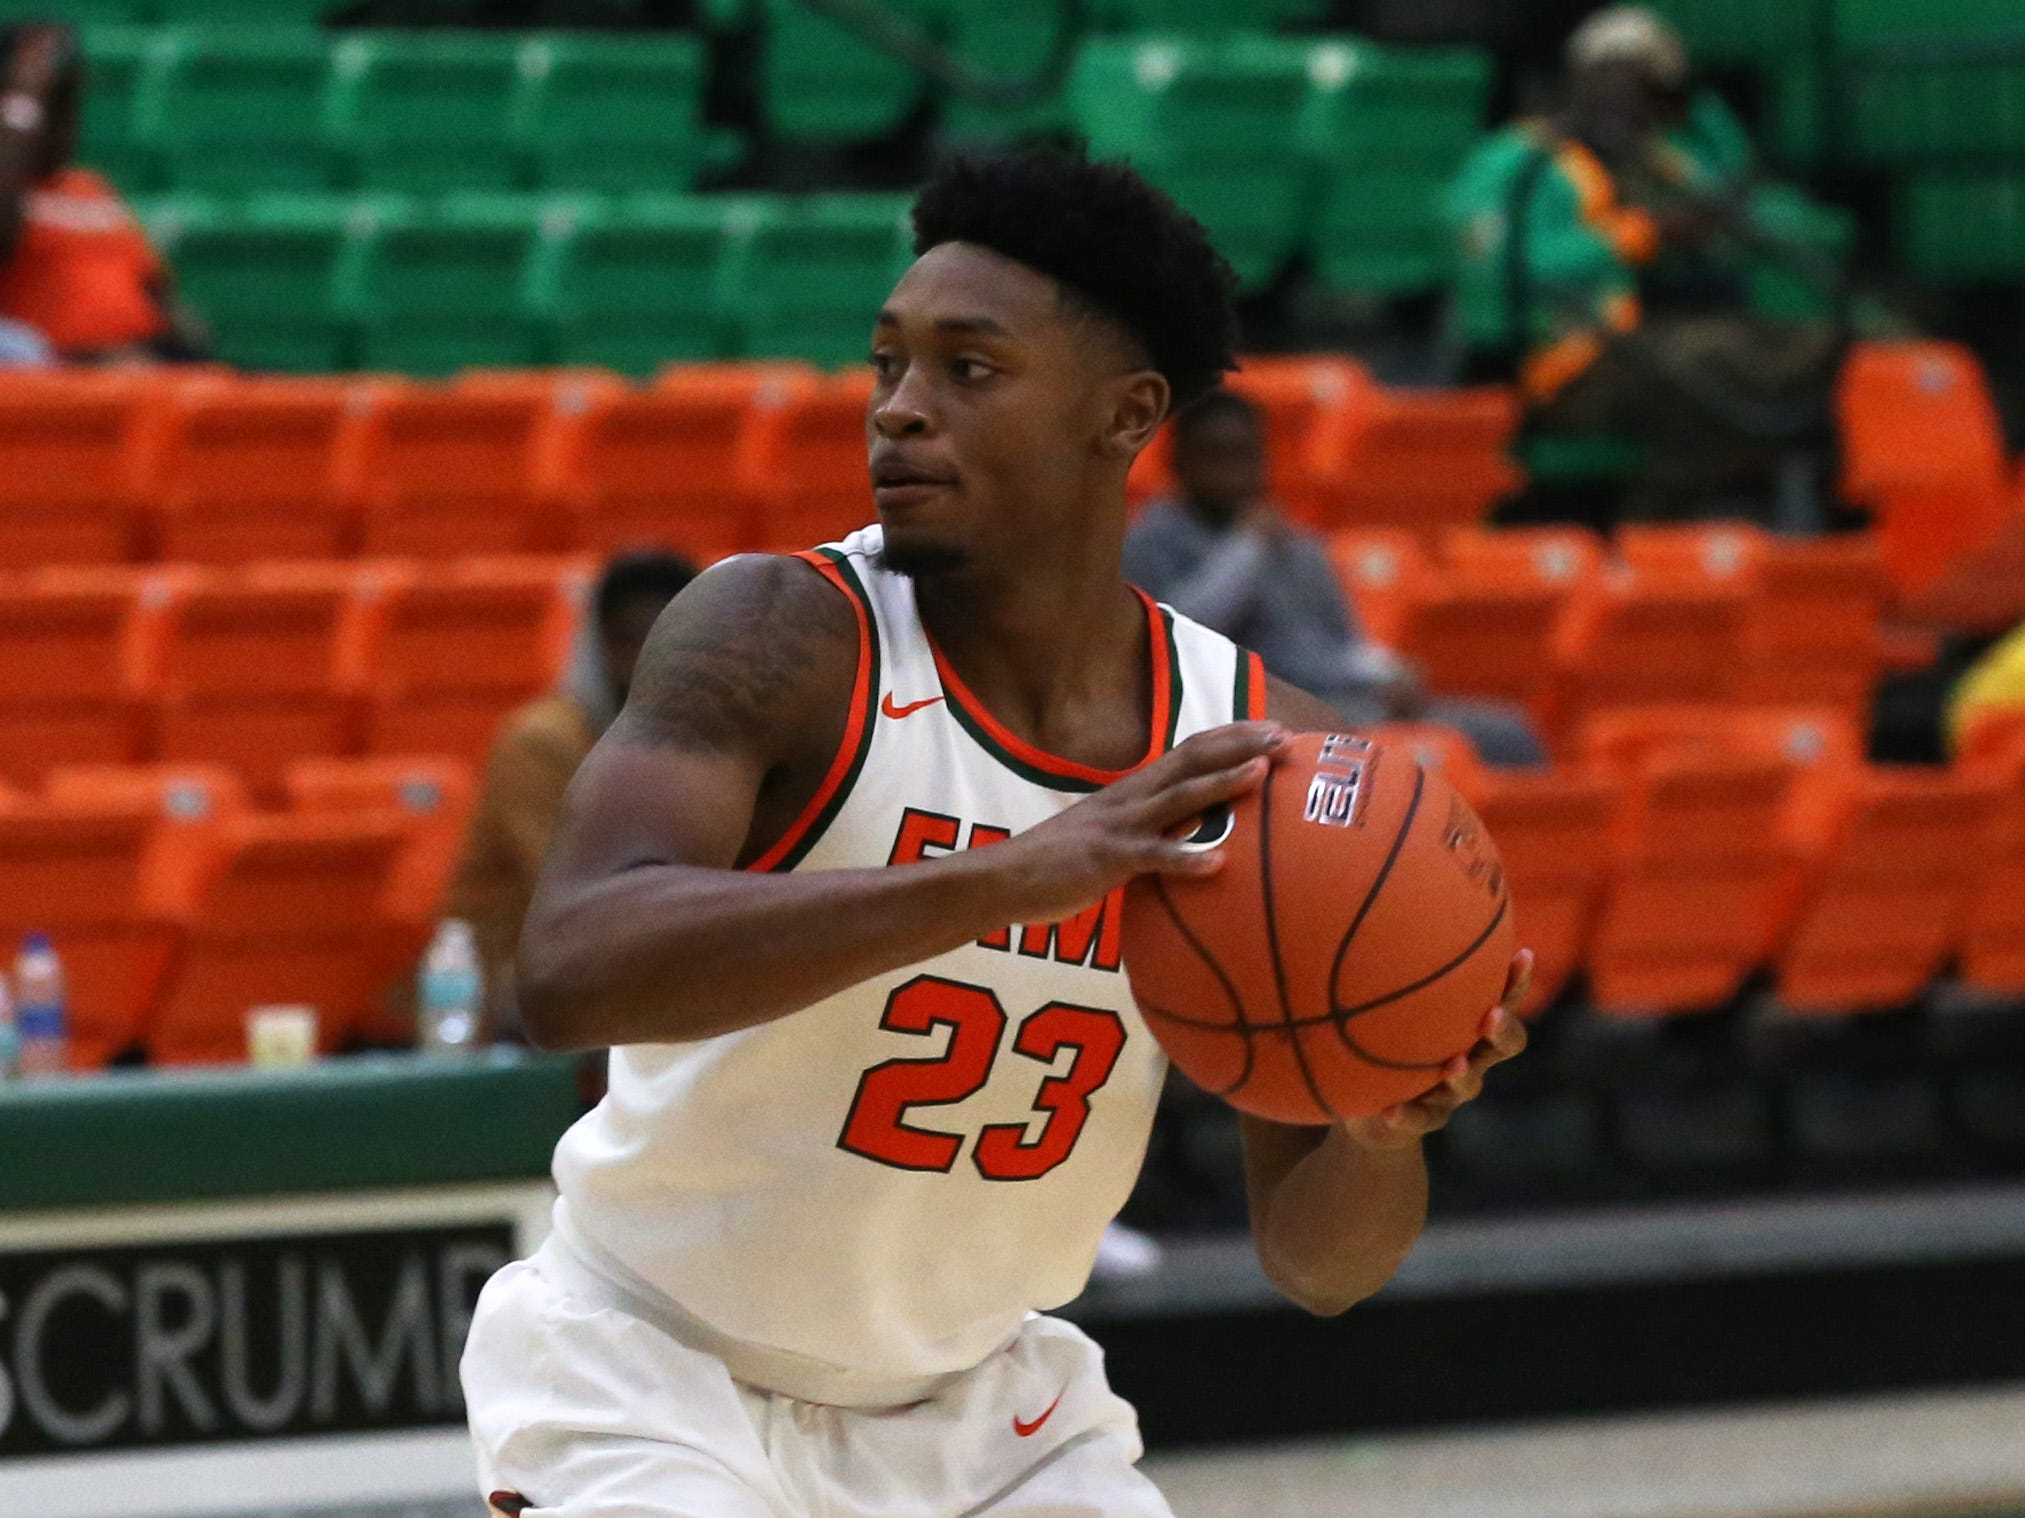 Florida A&M Rattlers forward Bryce Moragne (23) looks for an open player to pass to as the FAMU Rattlers take on the Tuskegee Golden Tigers in their first home game of the season in the Lawson Center, Saturday, Nov. 10, 2018.